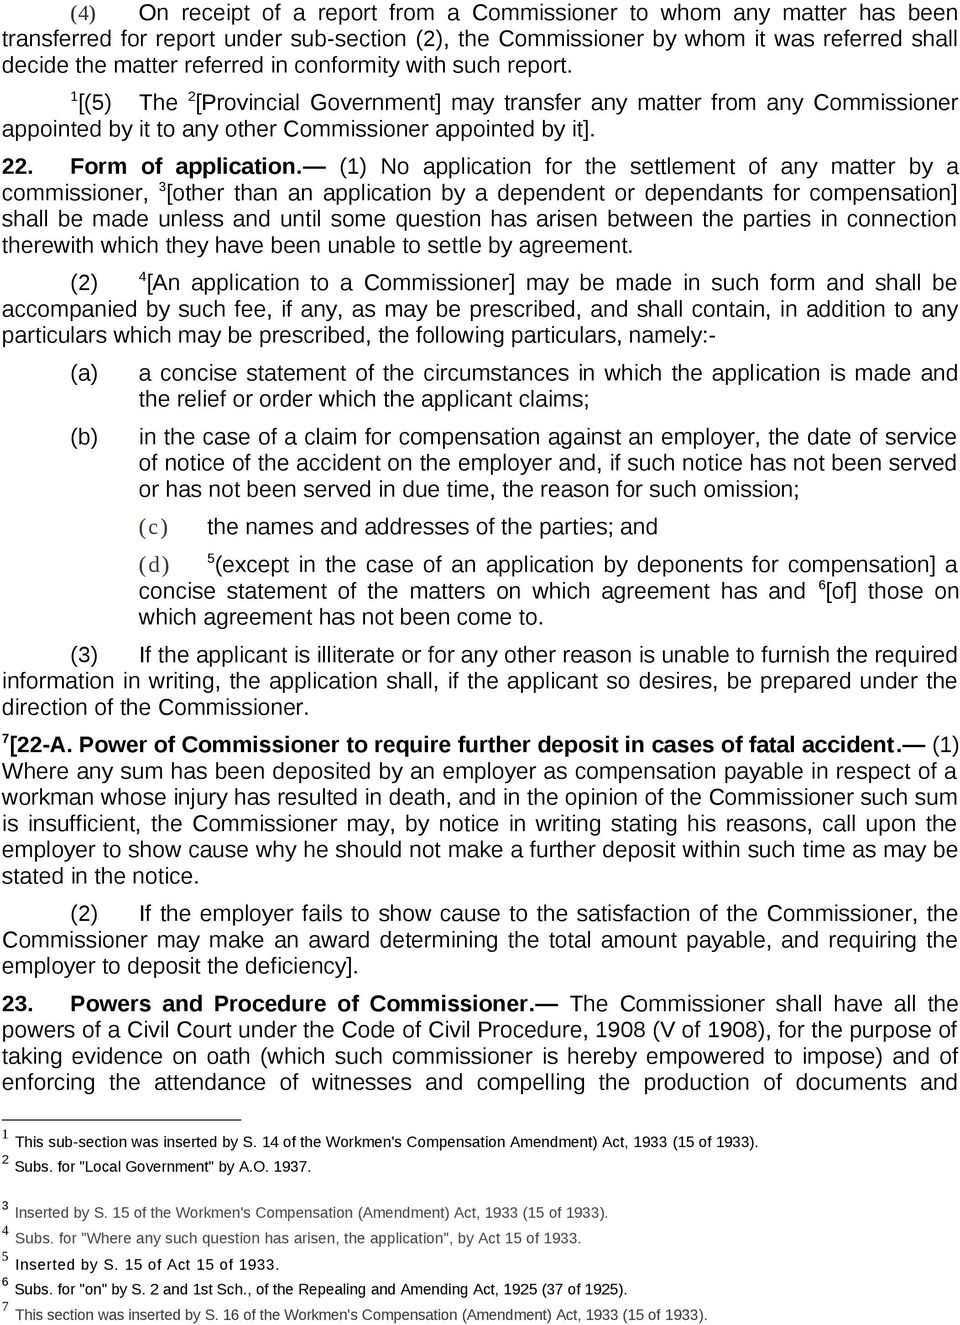 () No application for the settlement of any matter by a commissioner, 3 [other than an application by a dependent or dependants for compensation] shall be made unless and until some question has